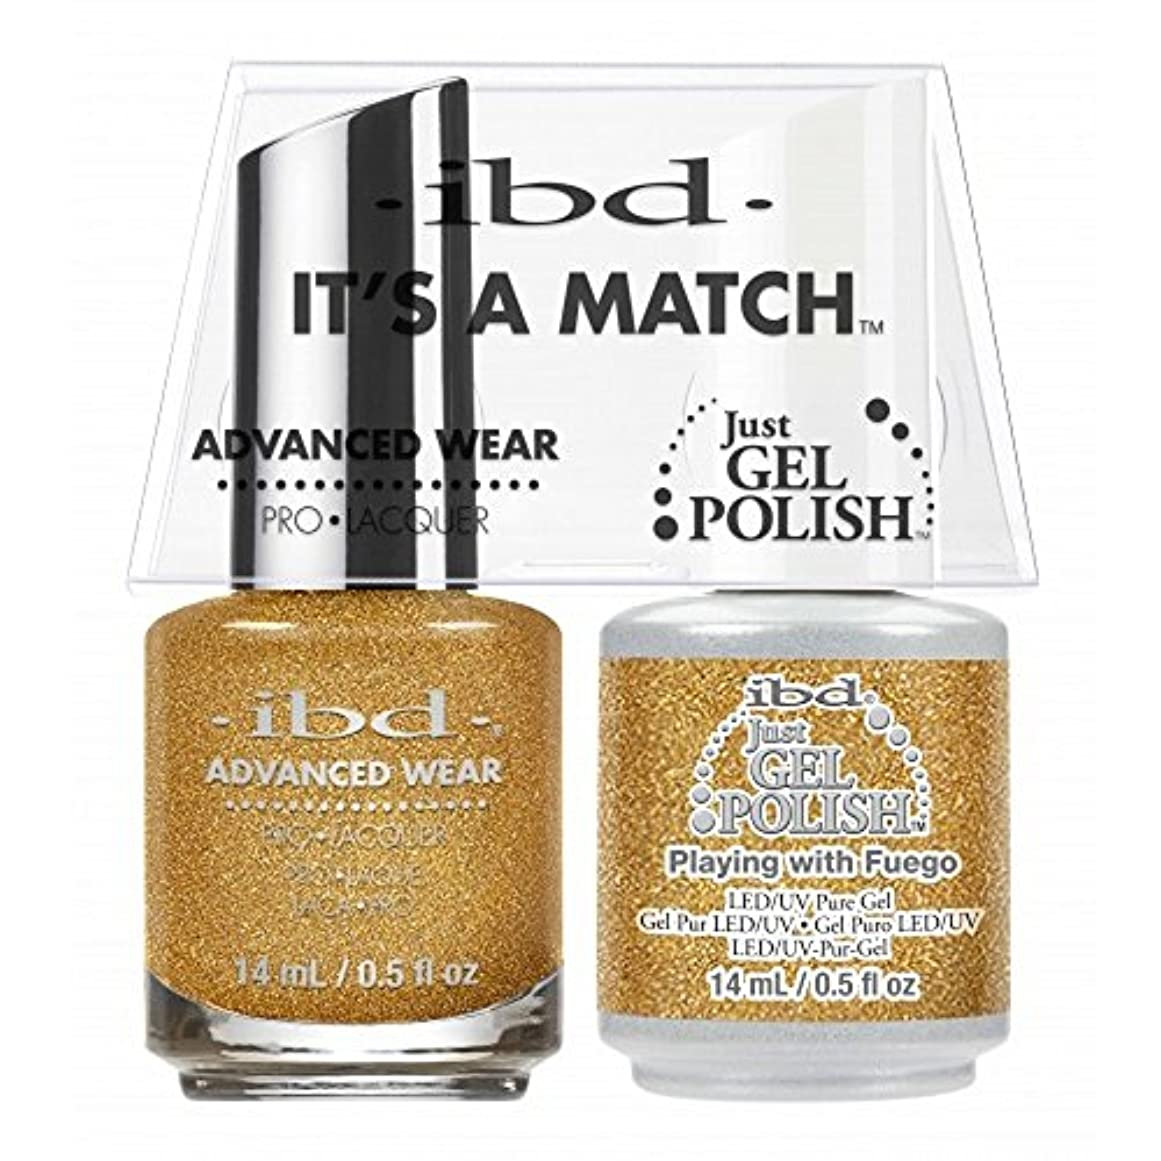 ibd - It's A Match -Duo Pack- Love Lola Collection - Playing with Fuego - 14 mL / 0.5 oz Each